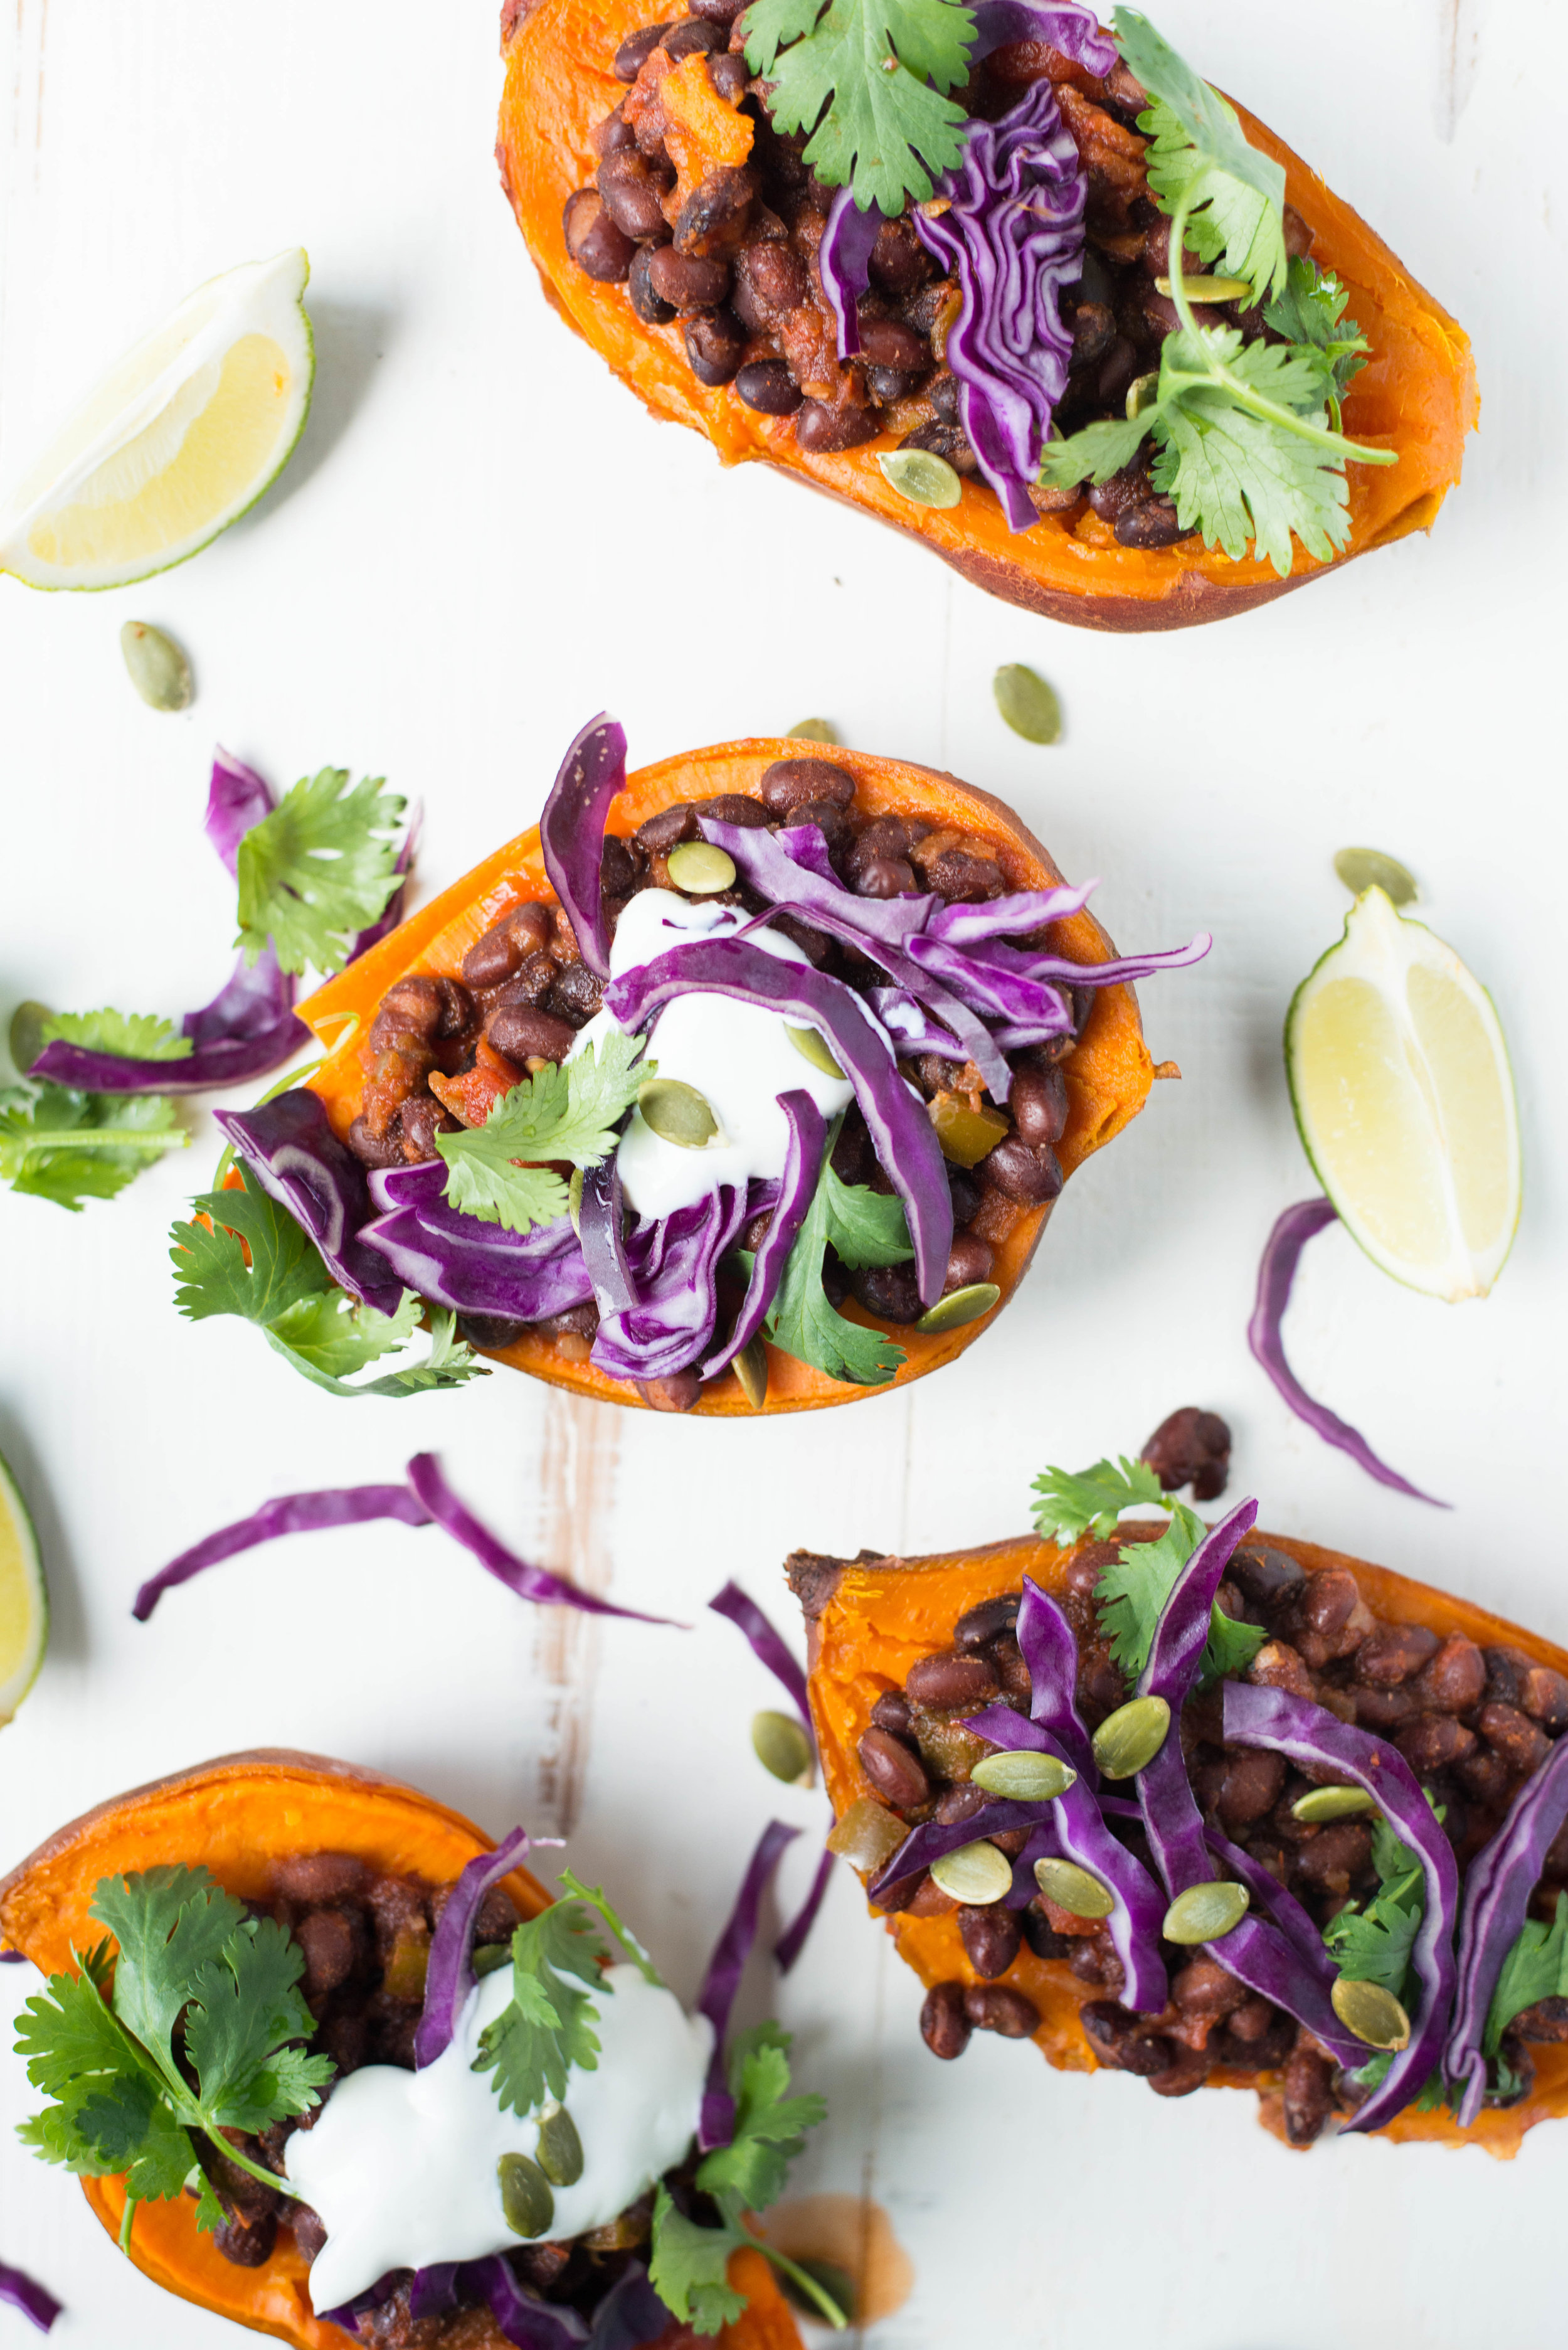 5-Ingredient Slow Cooker Black Bean Stuffed Sweet Potatoes are easy to prepare in the slow cooker and make for a filling, festive and delicious meal.